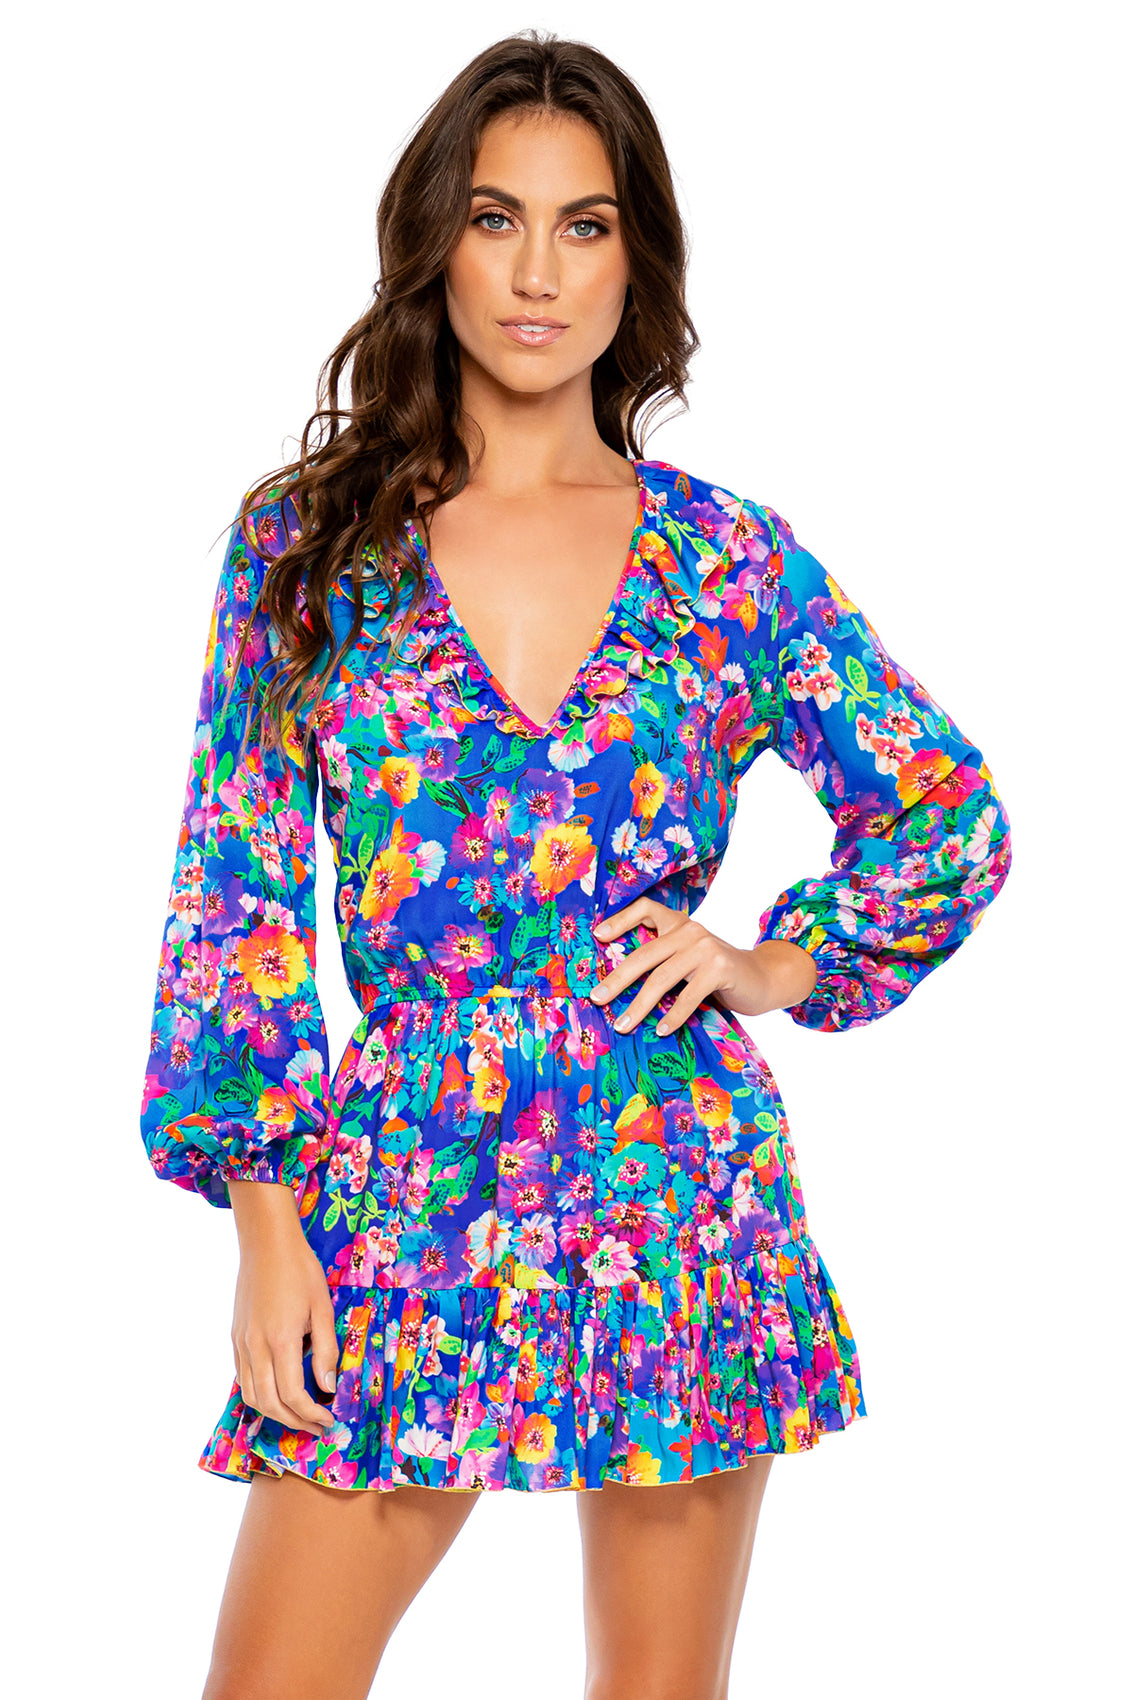 WATER BLOSSOMS - Ruffled Deep V Frill Hem Dress • Multicolor